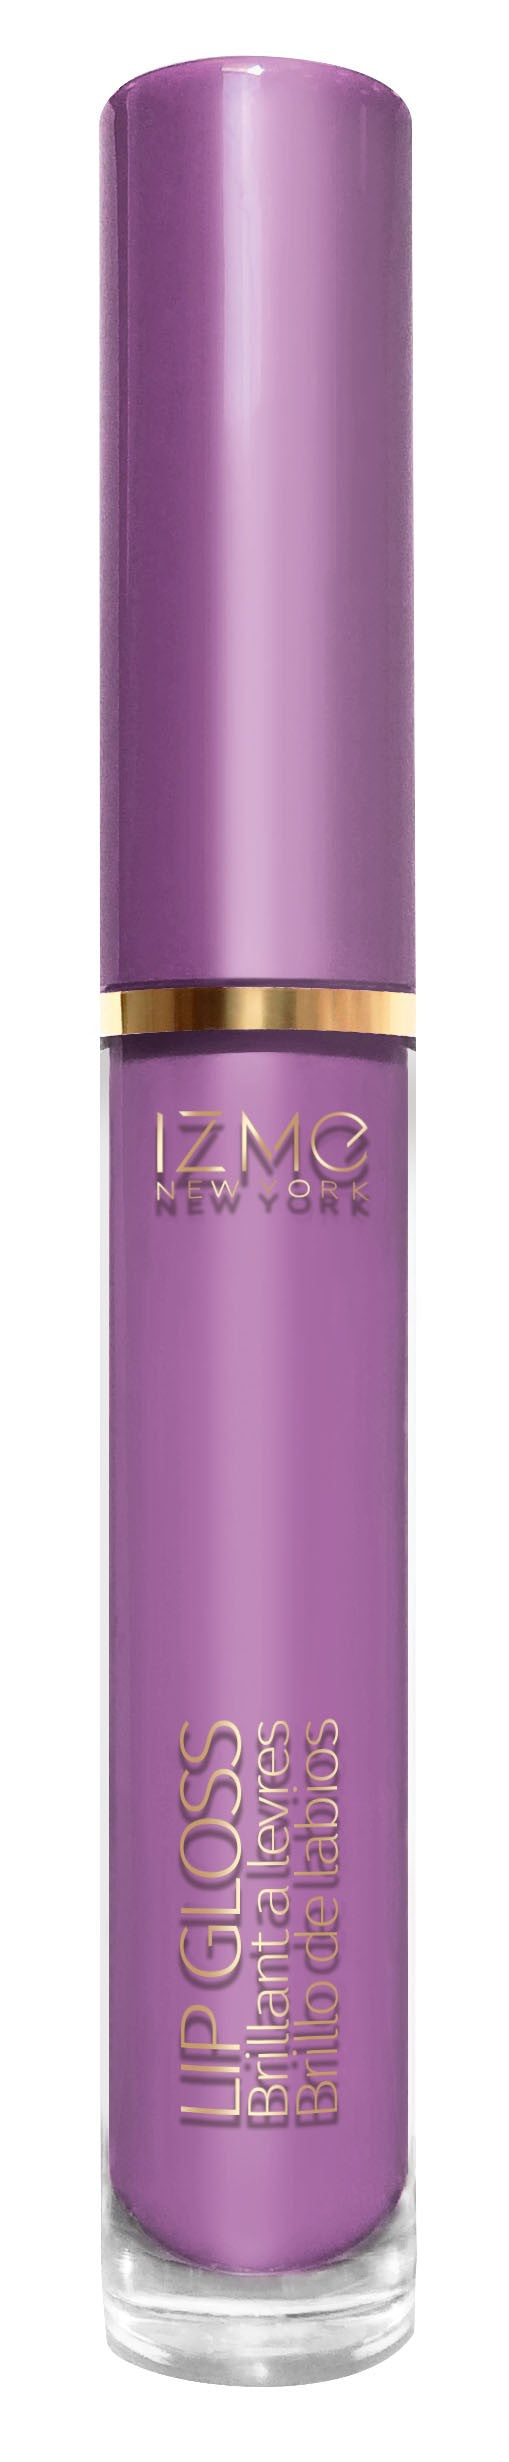 IZME New York Lip Gloss– Kelly